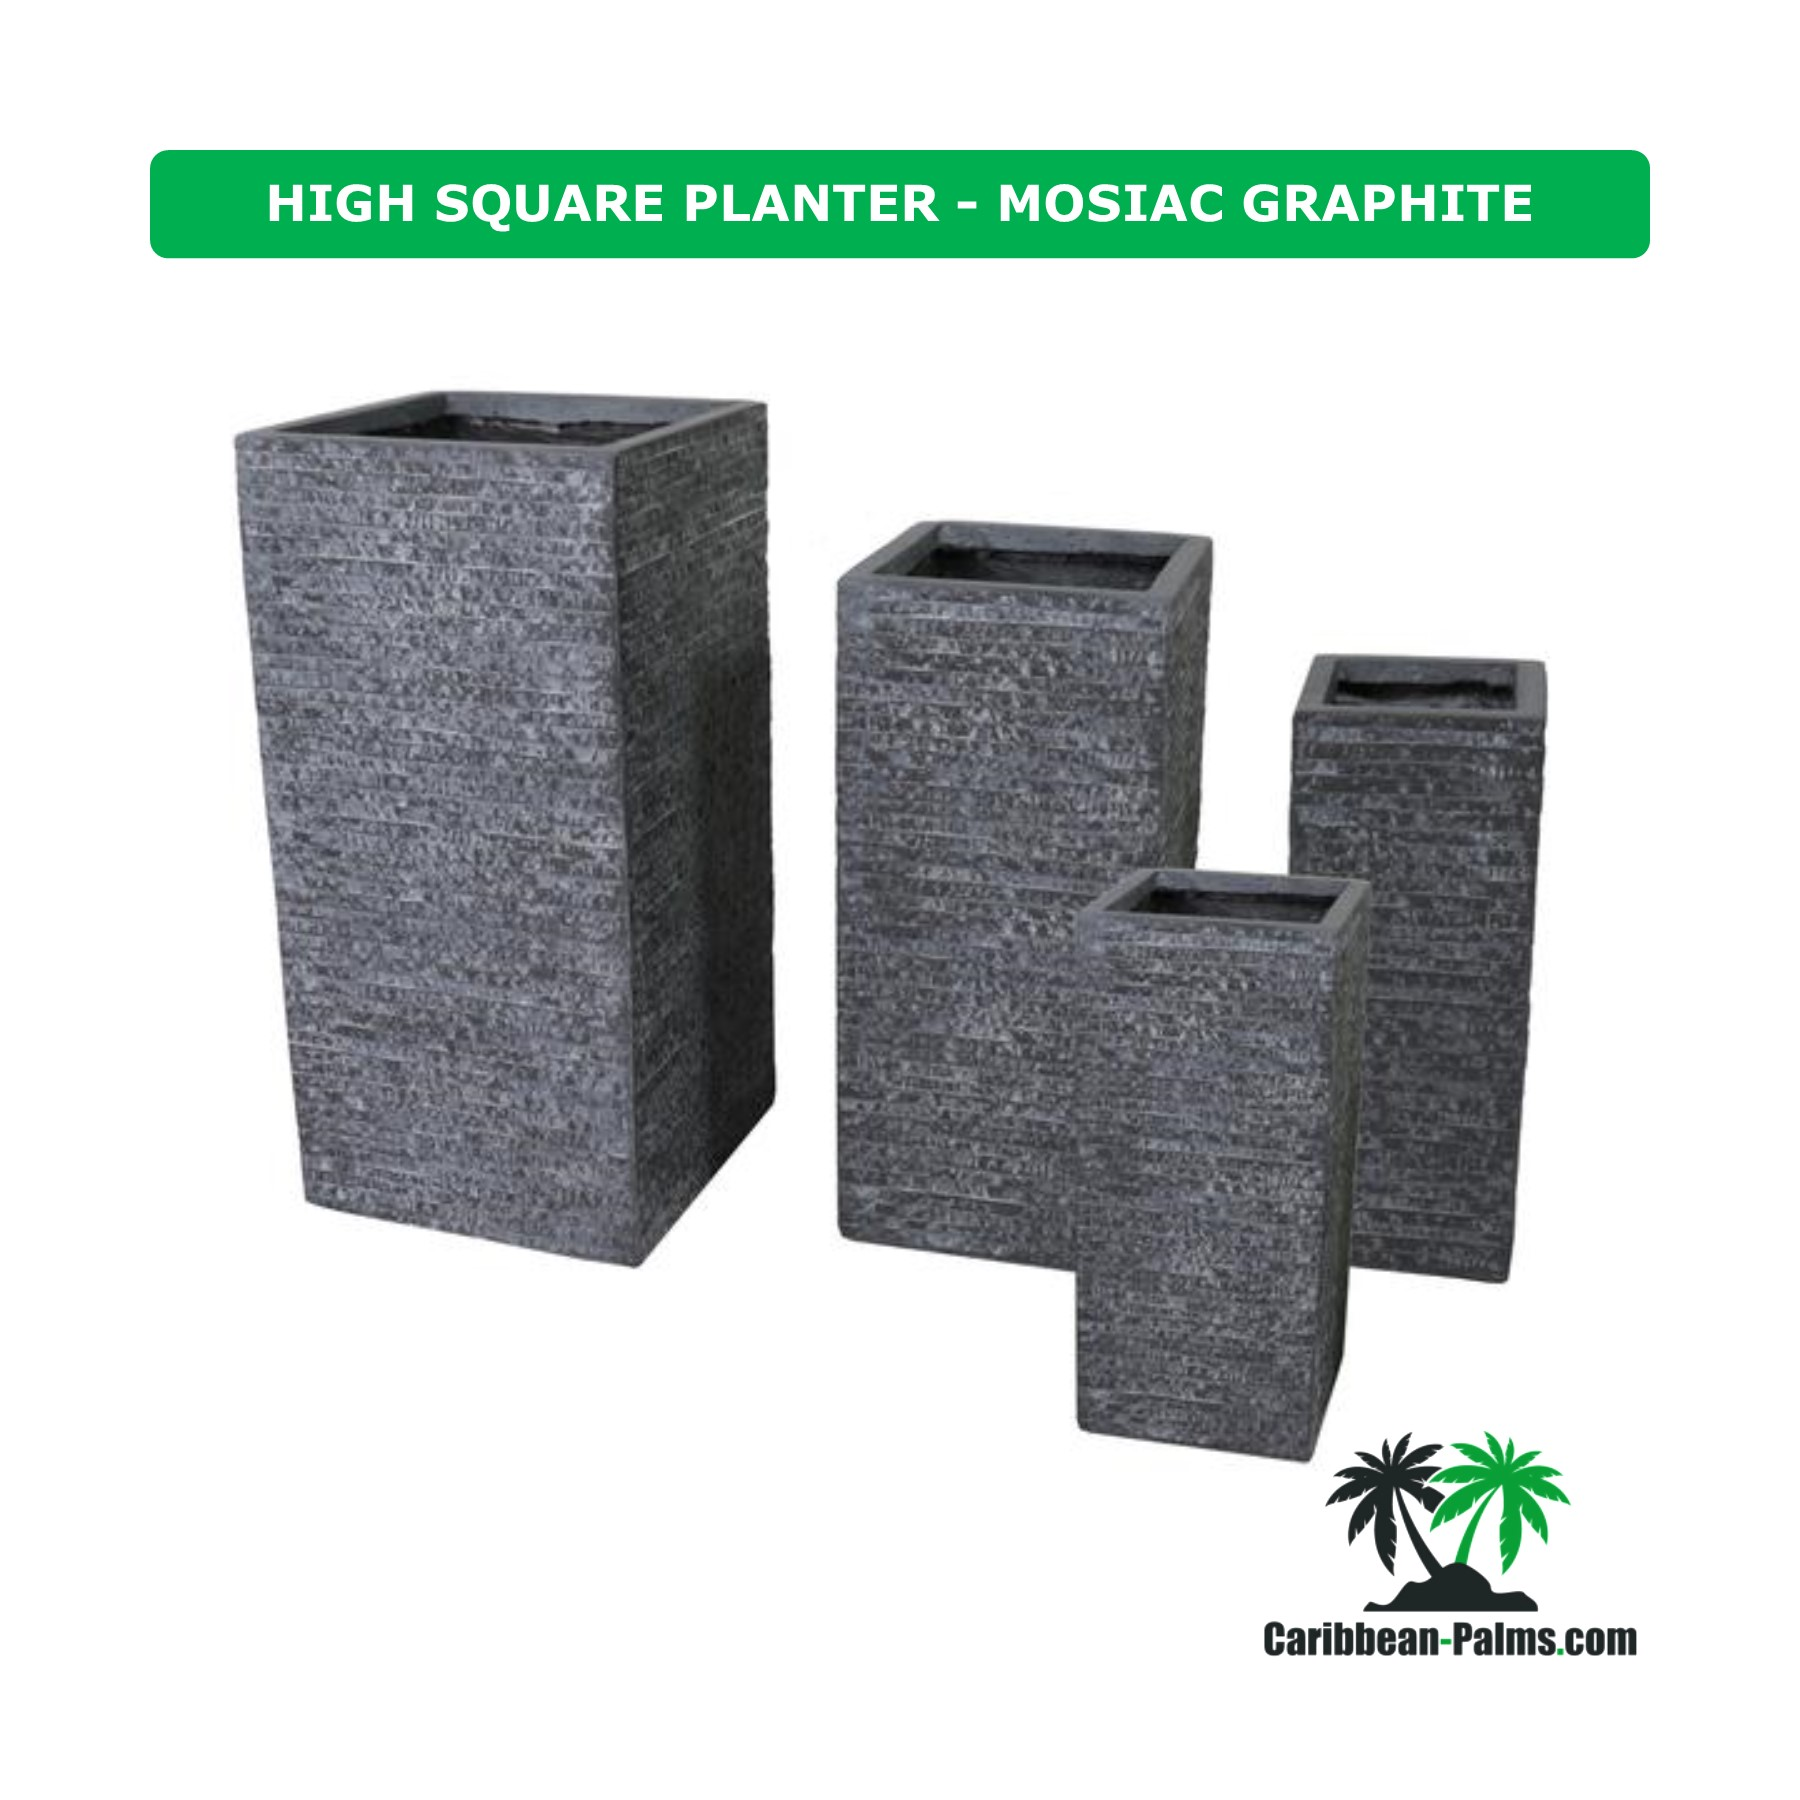 HIGH SQUARE PLANTER MOSIAC GRAPHITE